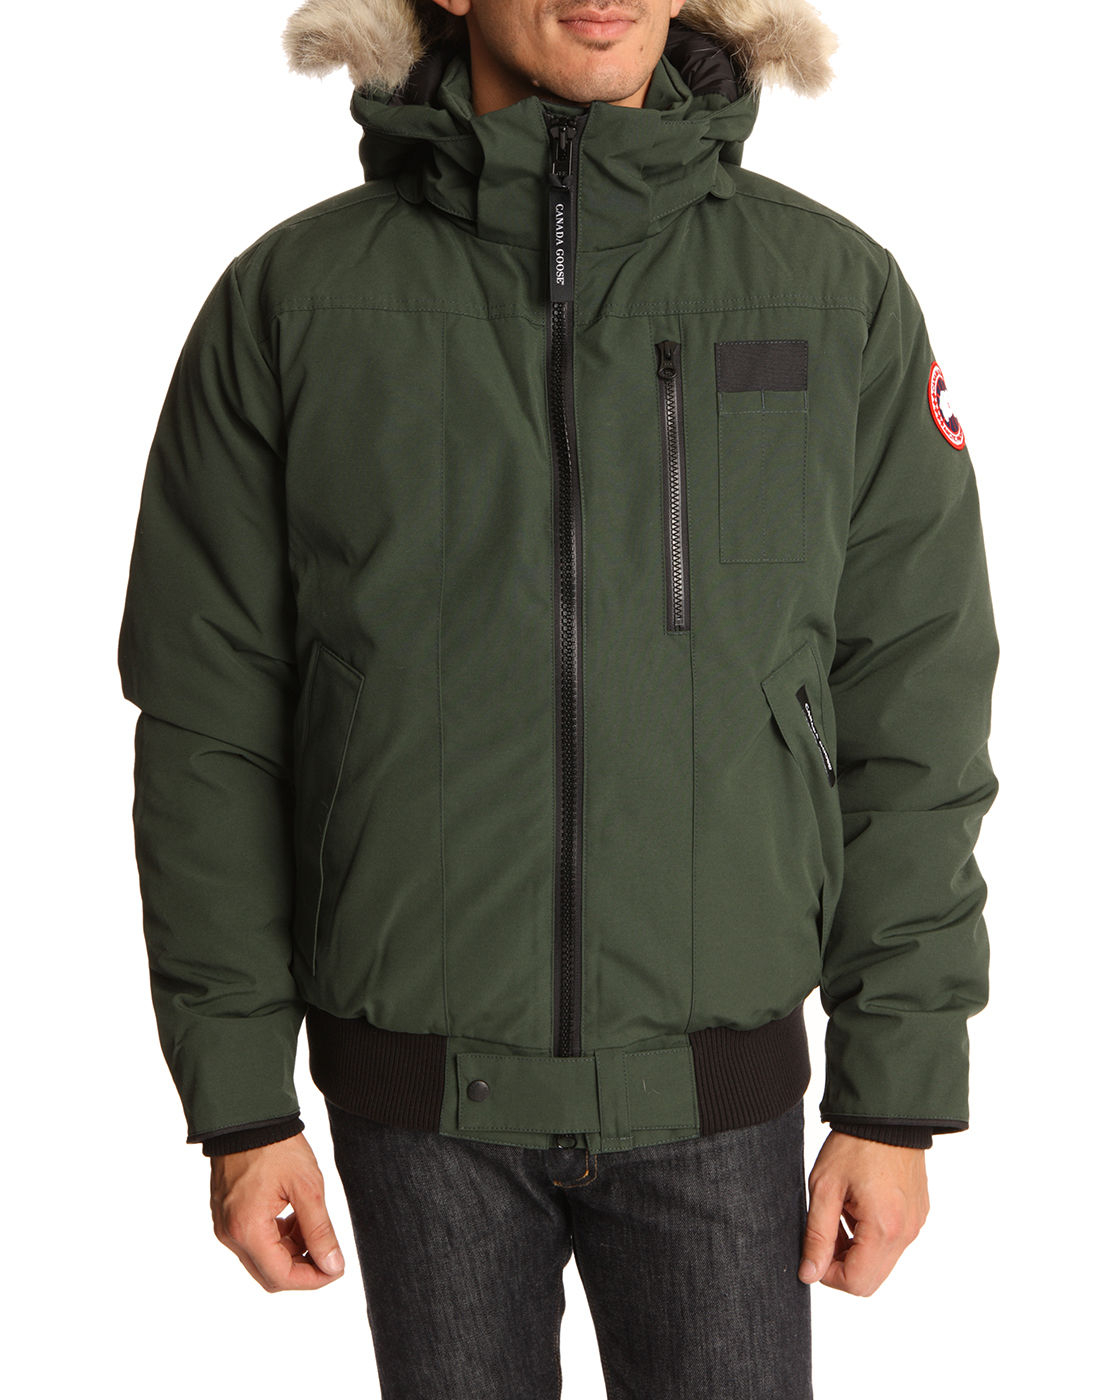 Long green bomber jacket mens Posted on by admin Posted in Black Coat, Black Jacket, Green Coat, Jacket Men, Jacket Womens, Ladies Coats, Ladies Parka, Long Jacket, Mens Coats, Outerwear, Outerwear Jackets, Overcoat, Women's Coats Post navigation.